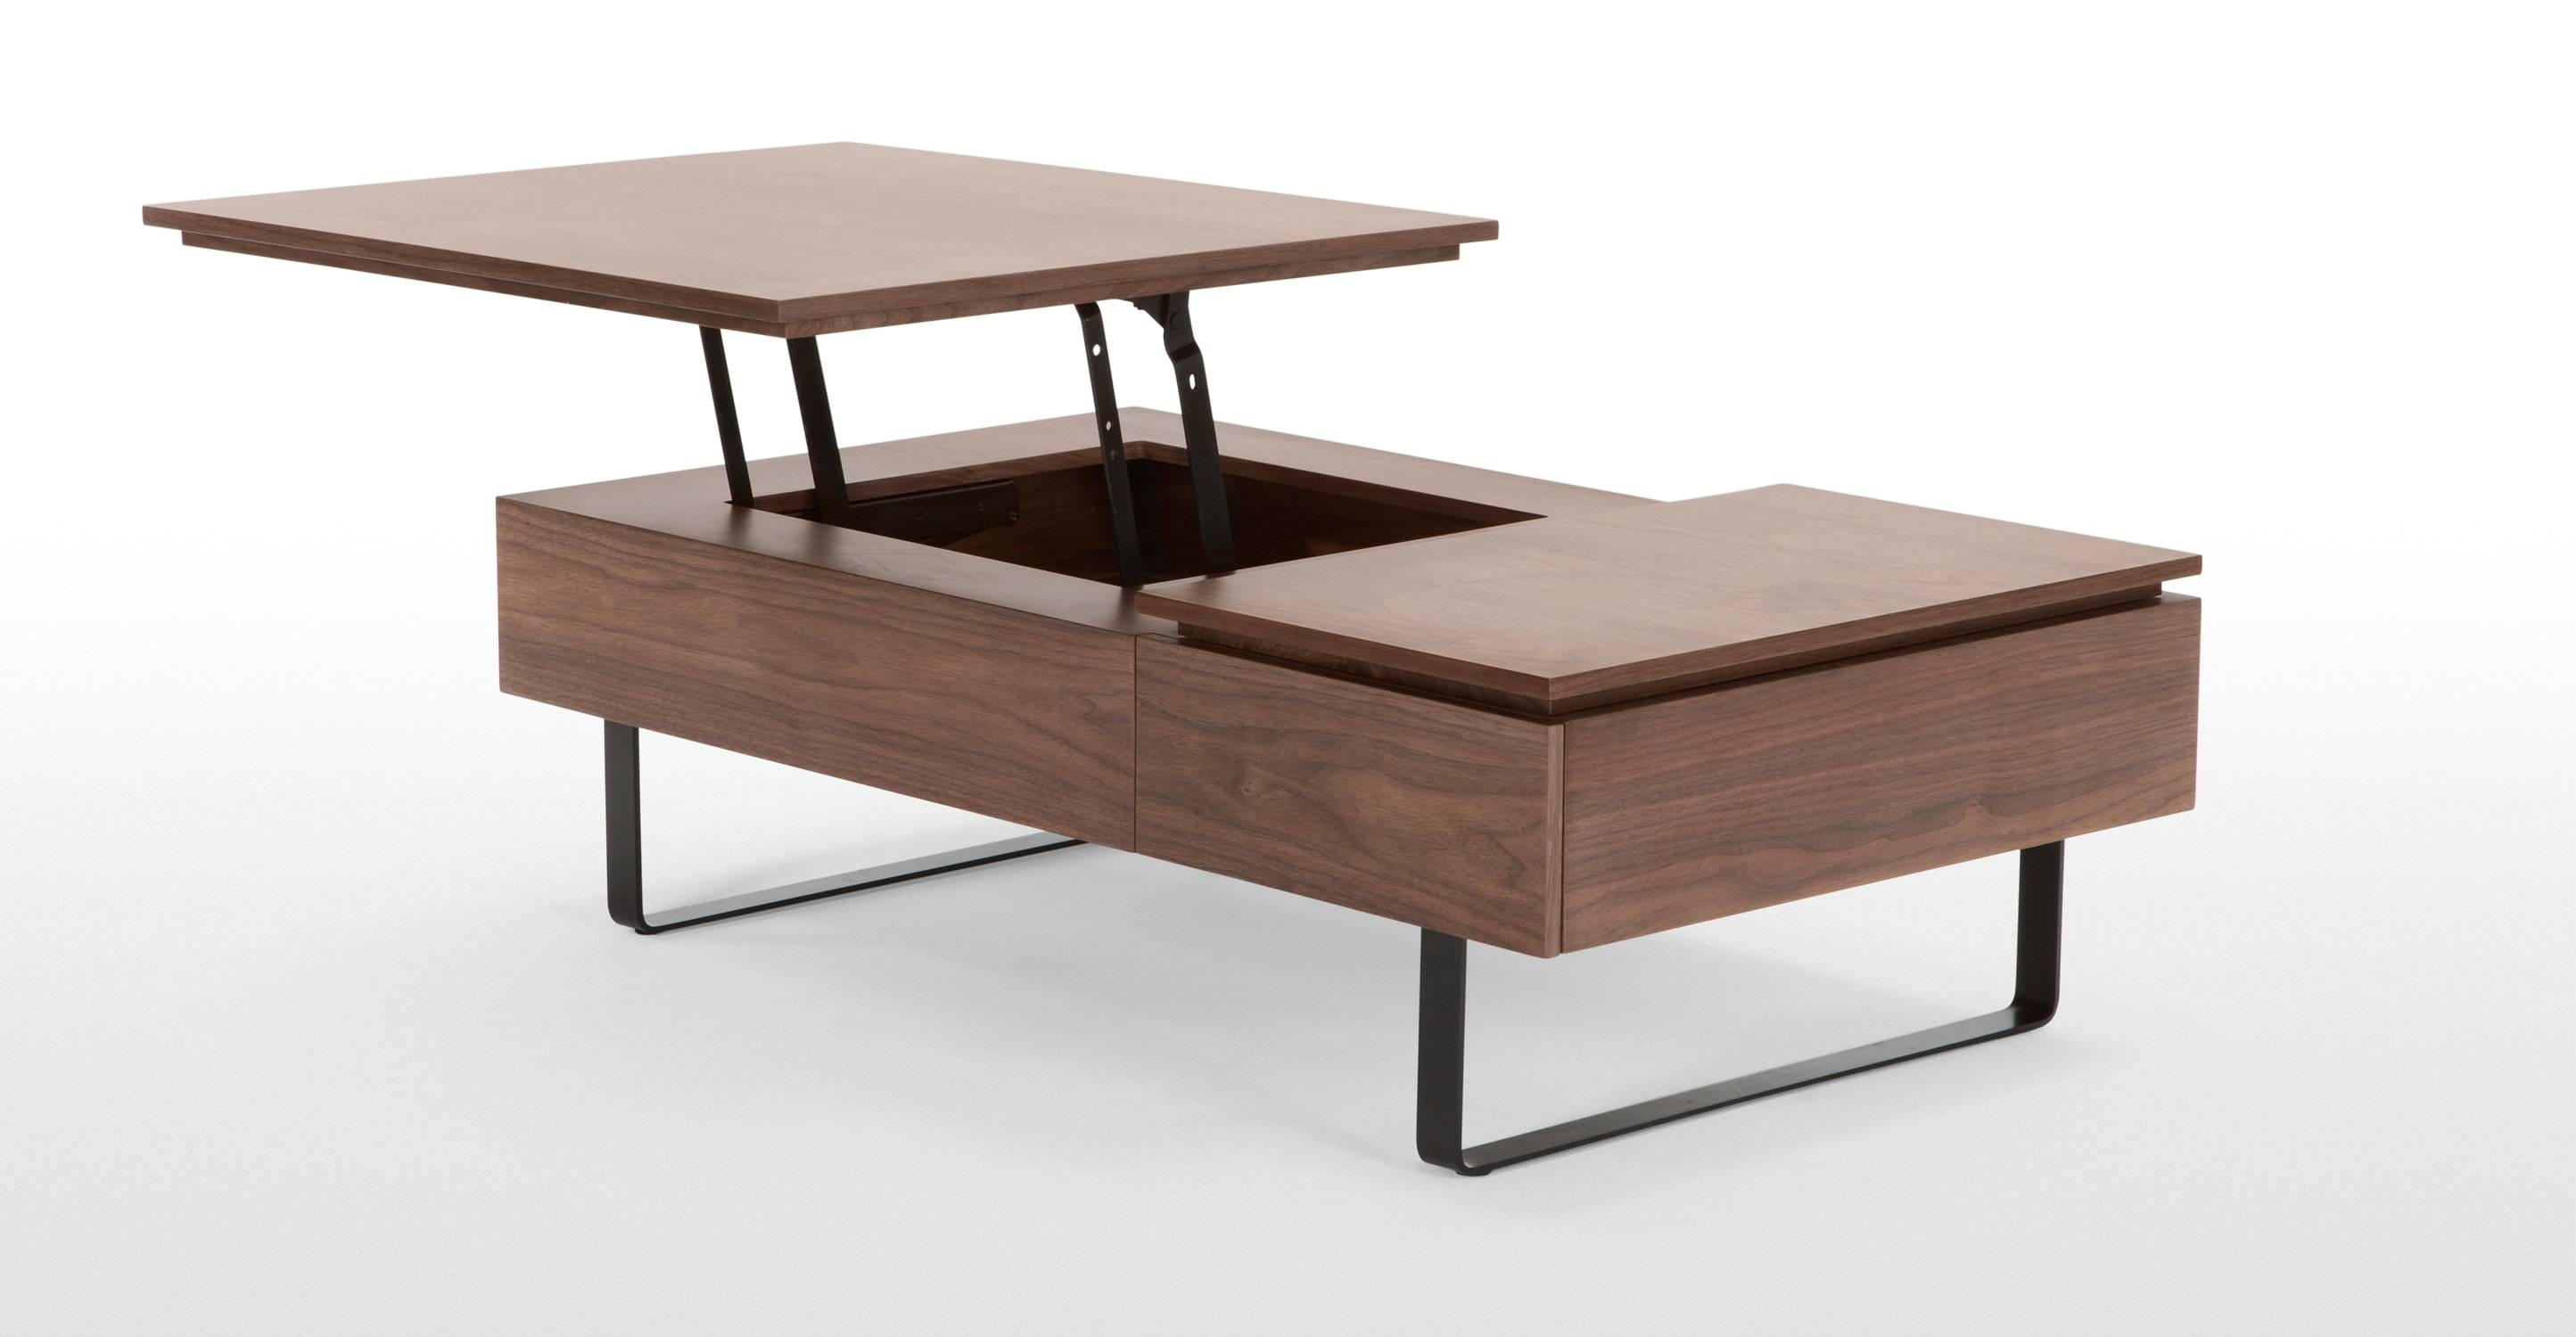 Coffee Table. Brilliant Coffee Tables With Storage Design Ideas with regard to Wooden Coffee Tables With Storage (Image 9 of 30)